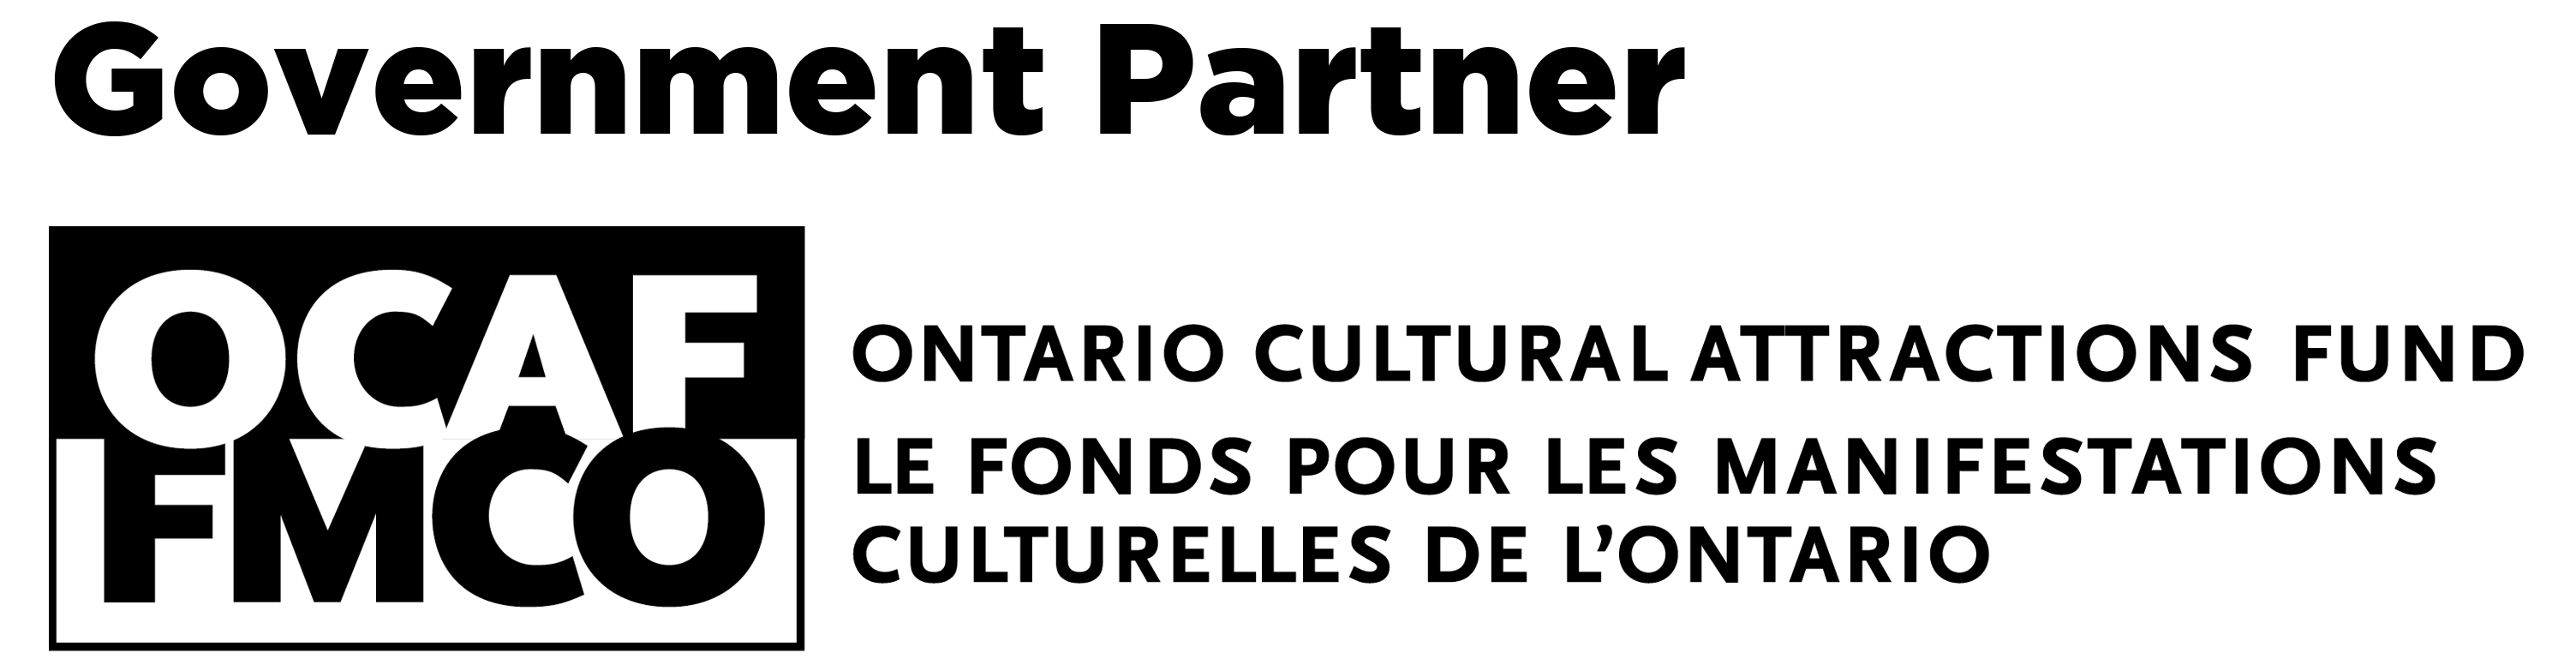 Ontario Cultural Attractions Fund